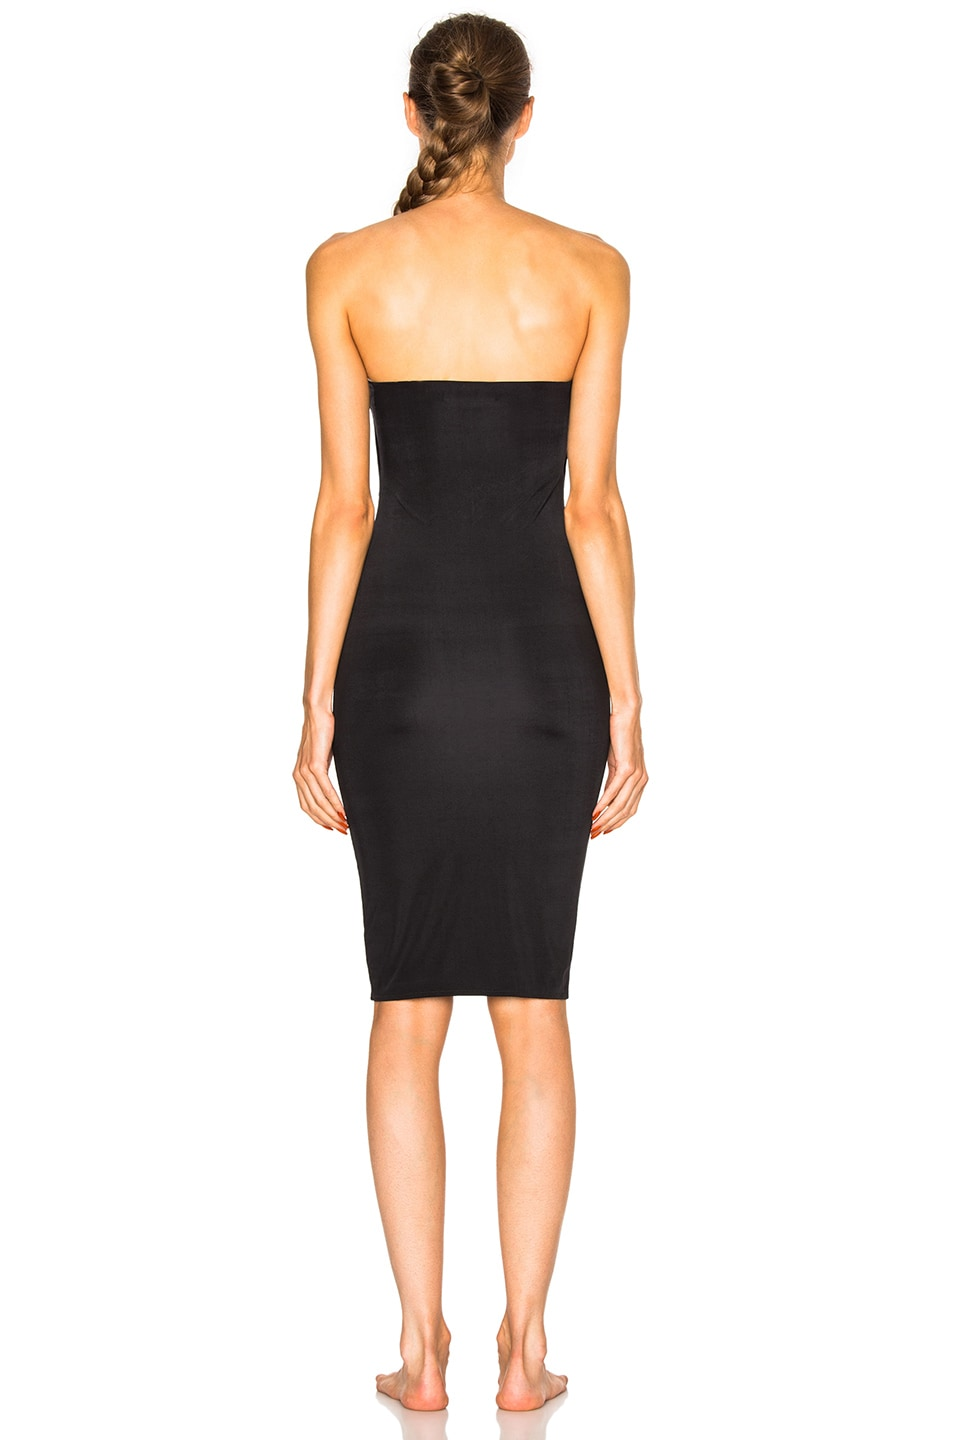 Image 4 of fleur du mal for FWRD Strapless Bodycon Slip in Black